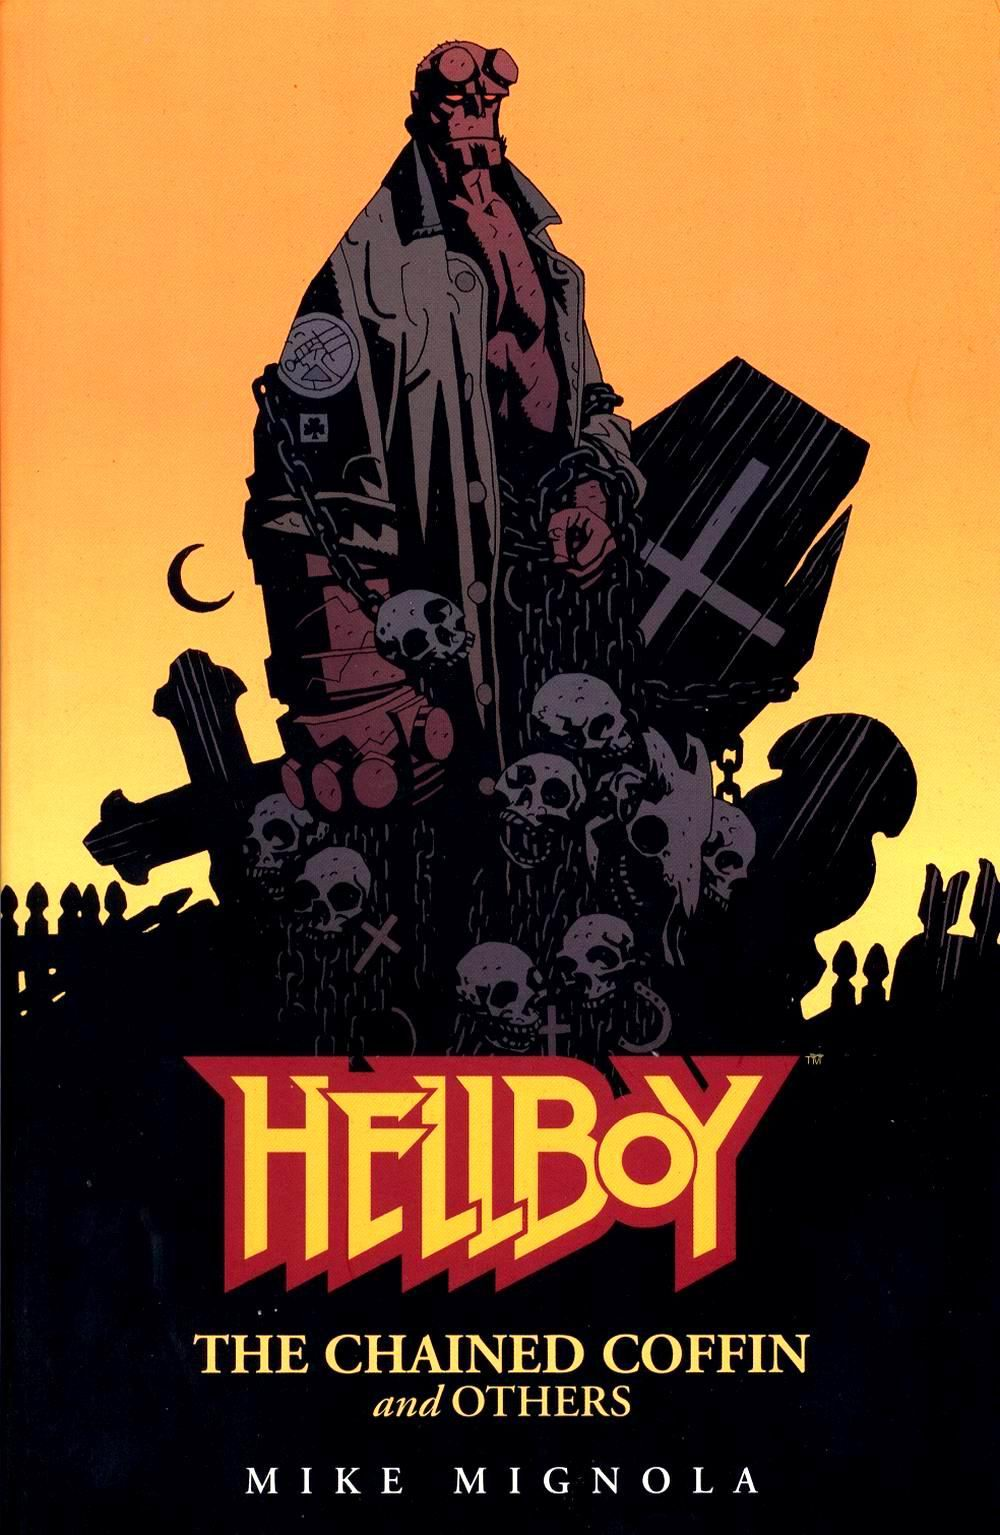 Hellboy: The Chained Coffin and Others Full Page 1